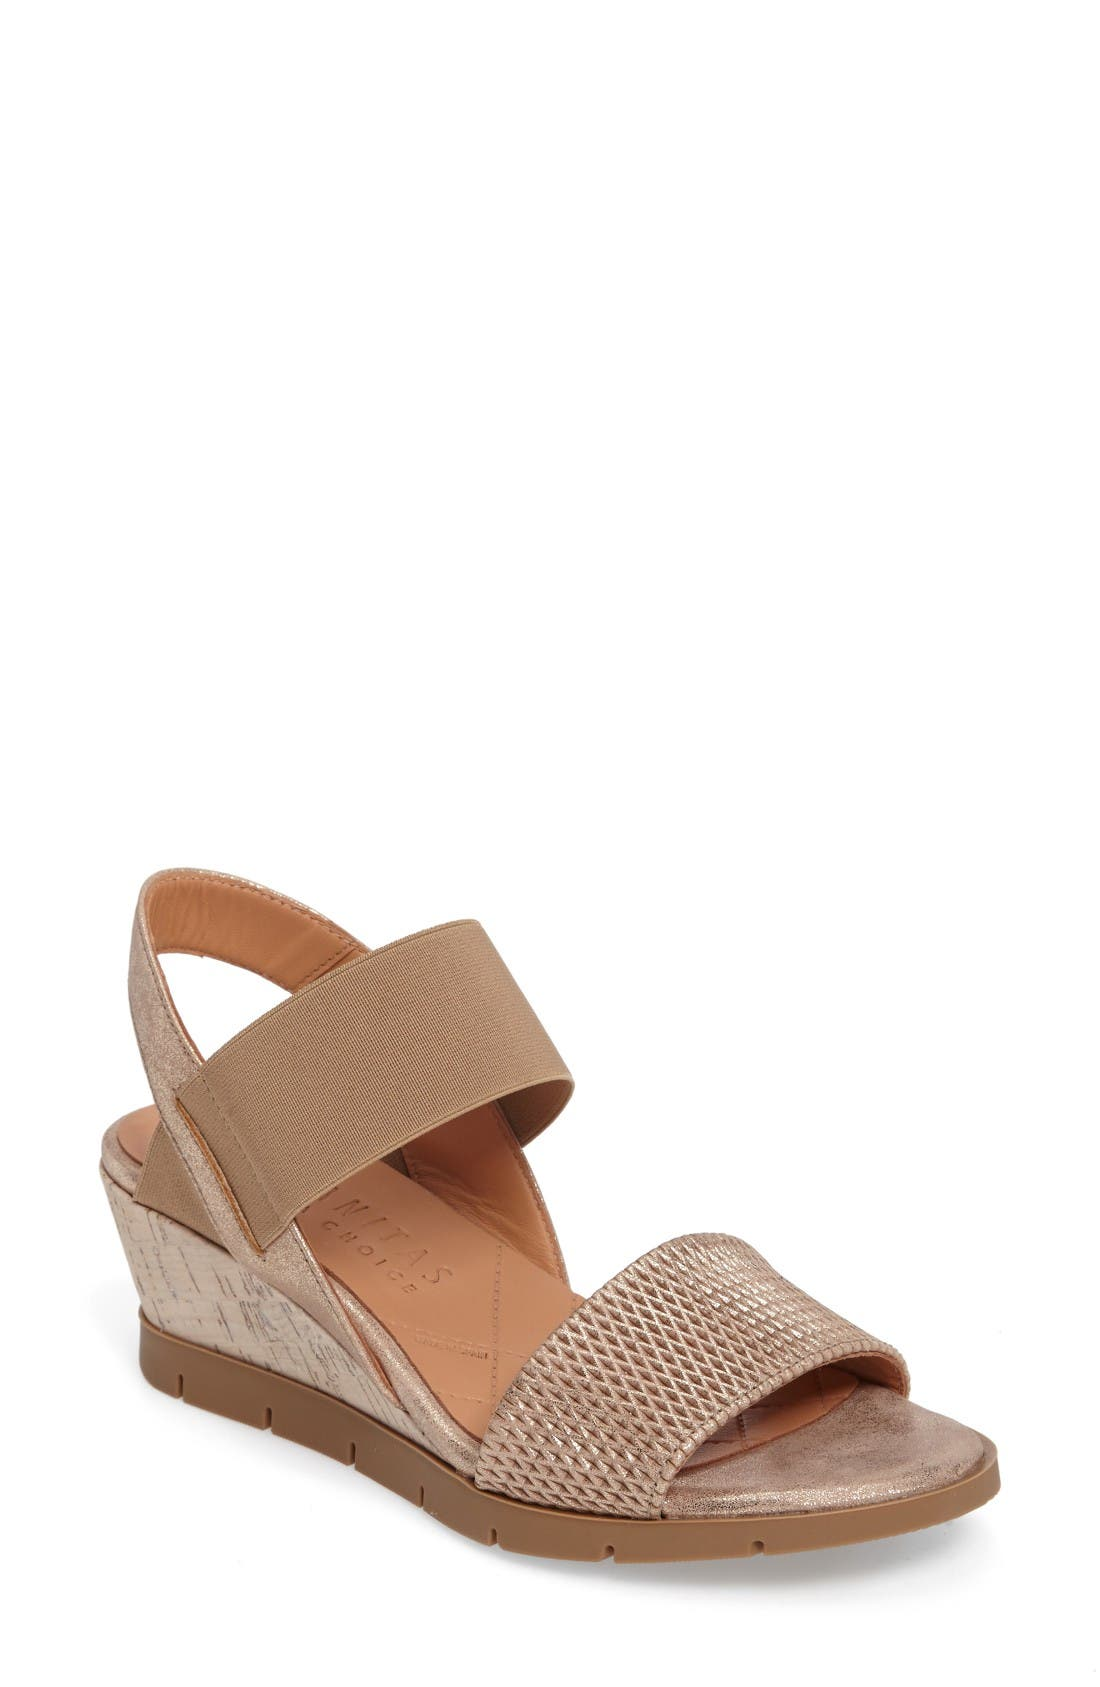 HISPANITAS Mercury Strappy Wedge Sandal